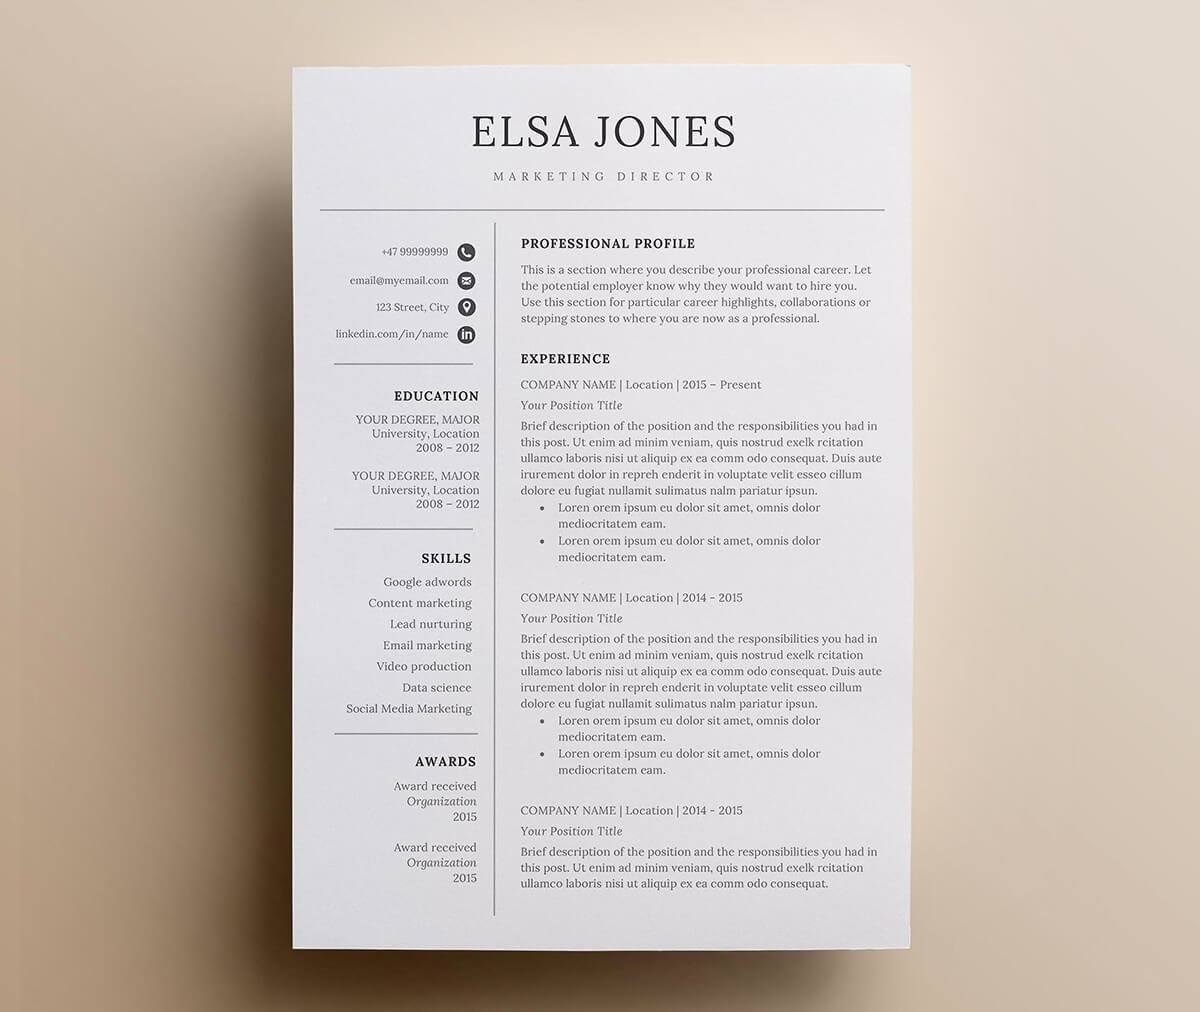 Professional Resume Templates (15 To Download And Use Right Away